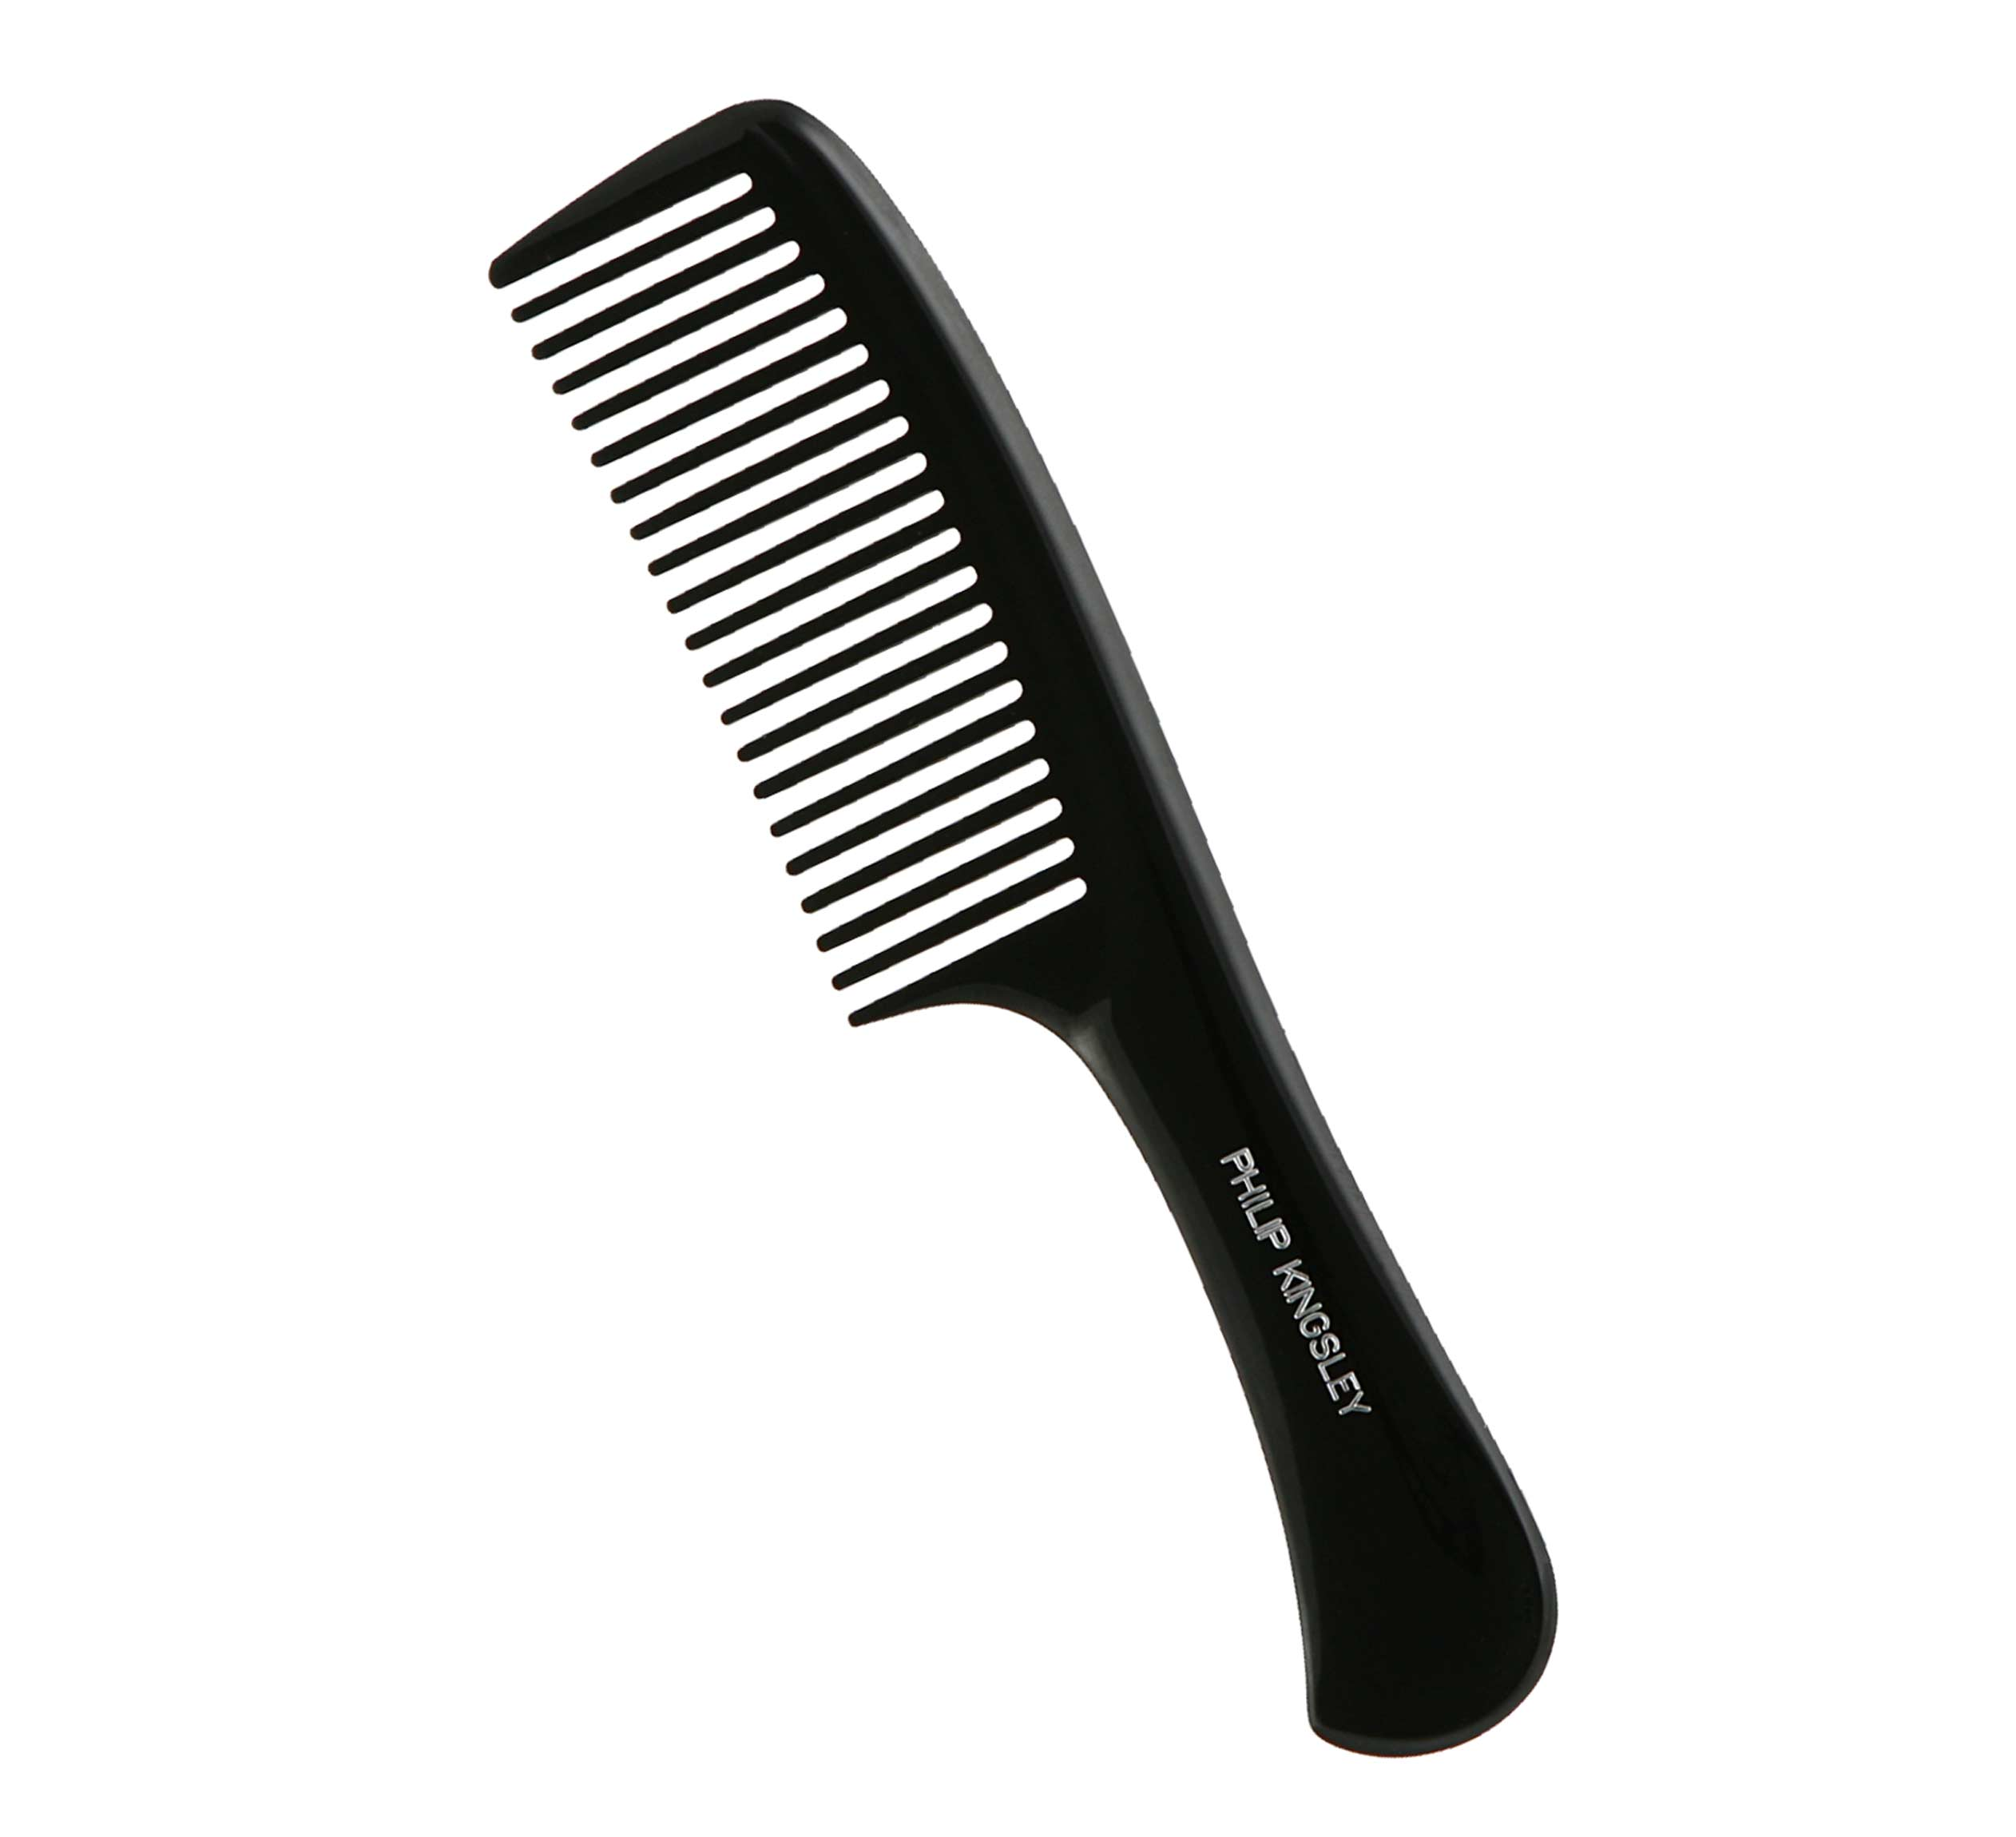 clip royalty free library Hairbrush clipart comb. Hair brush and clip